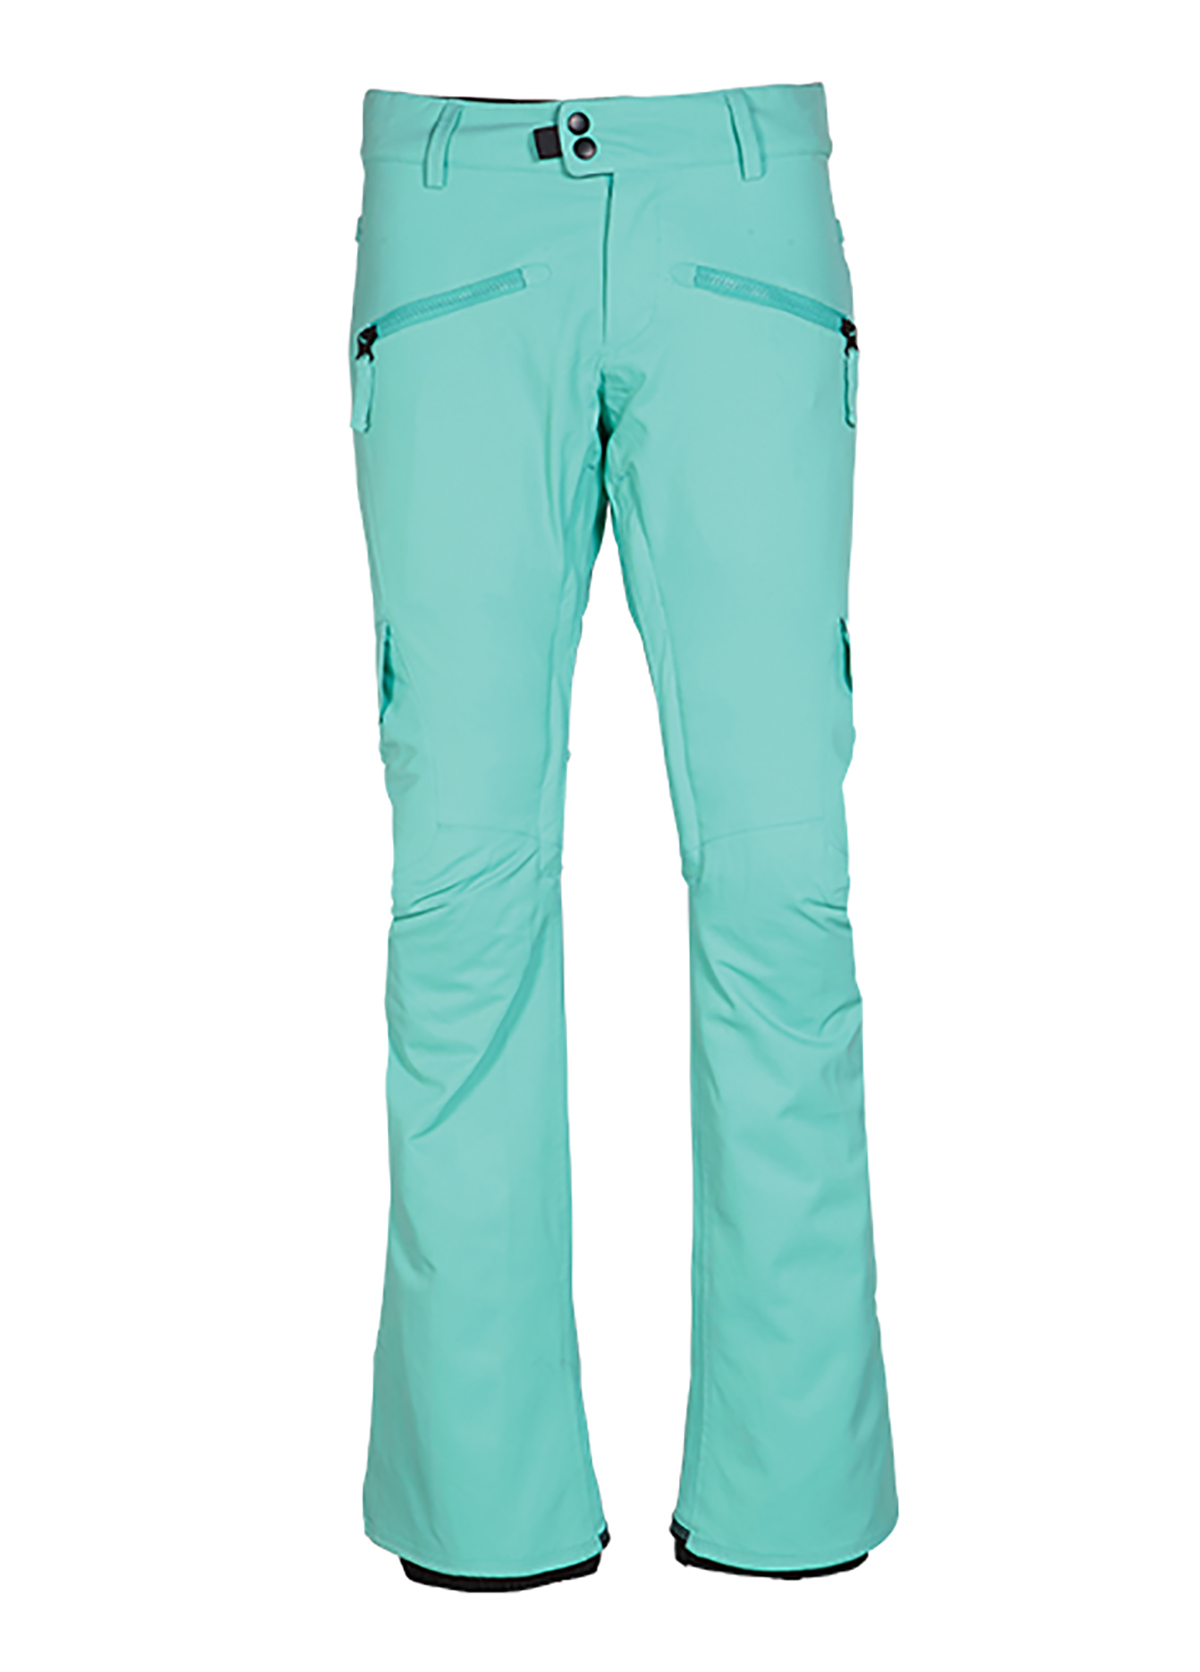 e8fb0106864b 686 Snowboard Pants - The Board Basement